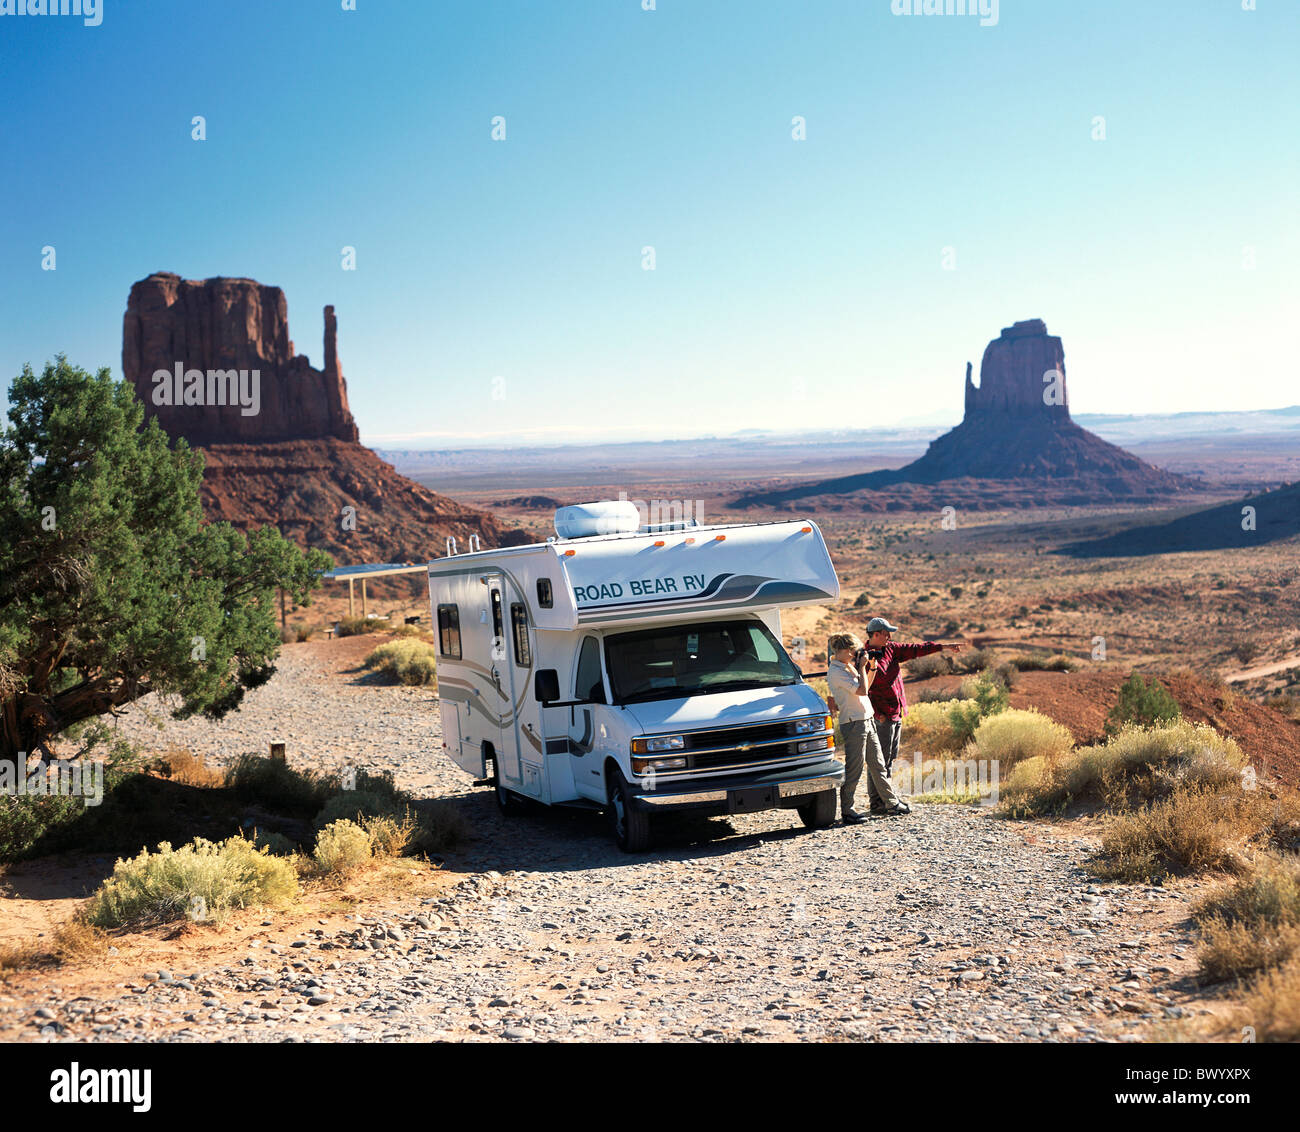 holidays vacation Arizona camping take photos scenery monument Valley pair couple USA America North Ameri - Stock Image